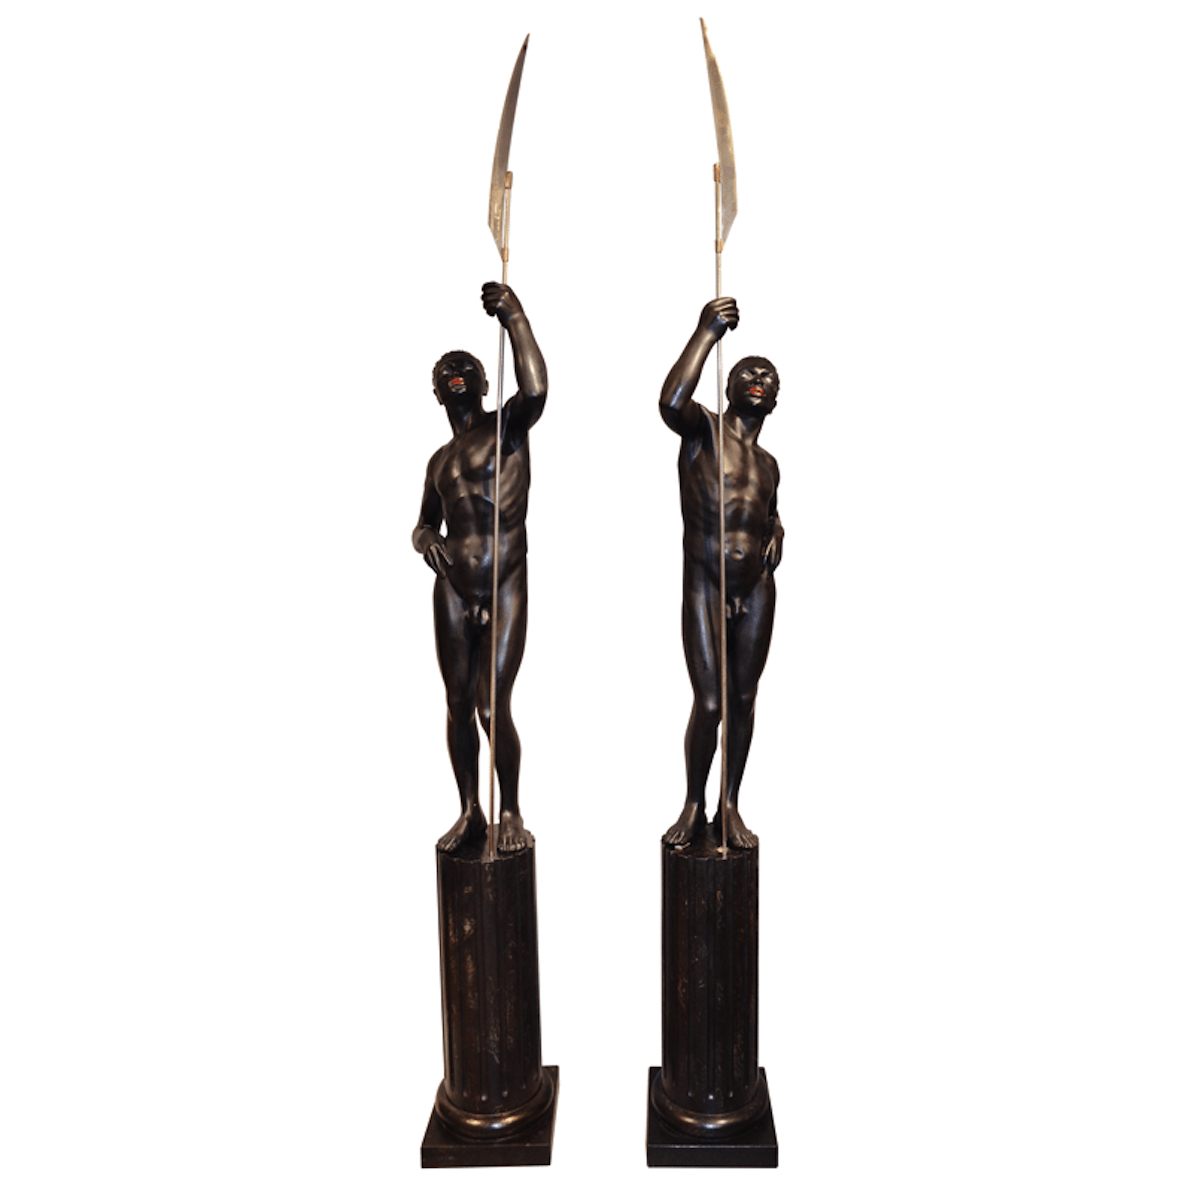 A Pair of Anthony Redmile Black Resin Nubian Men on Pedestals